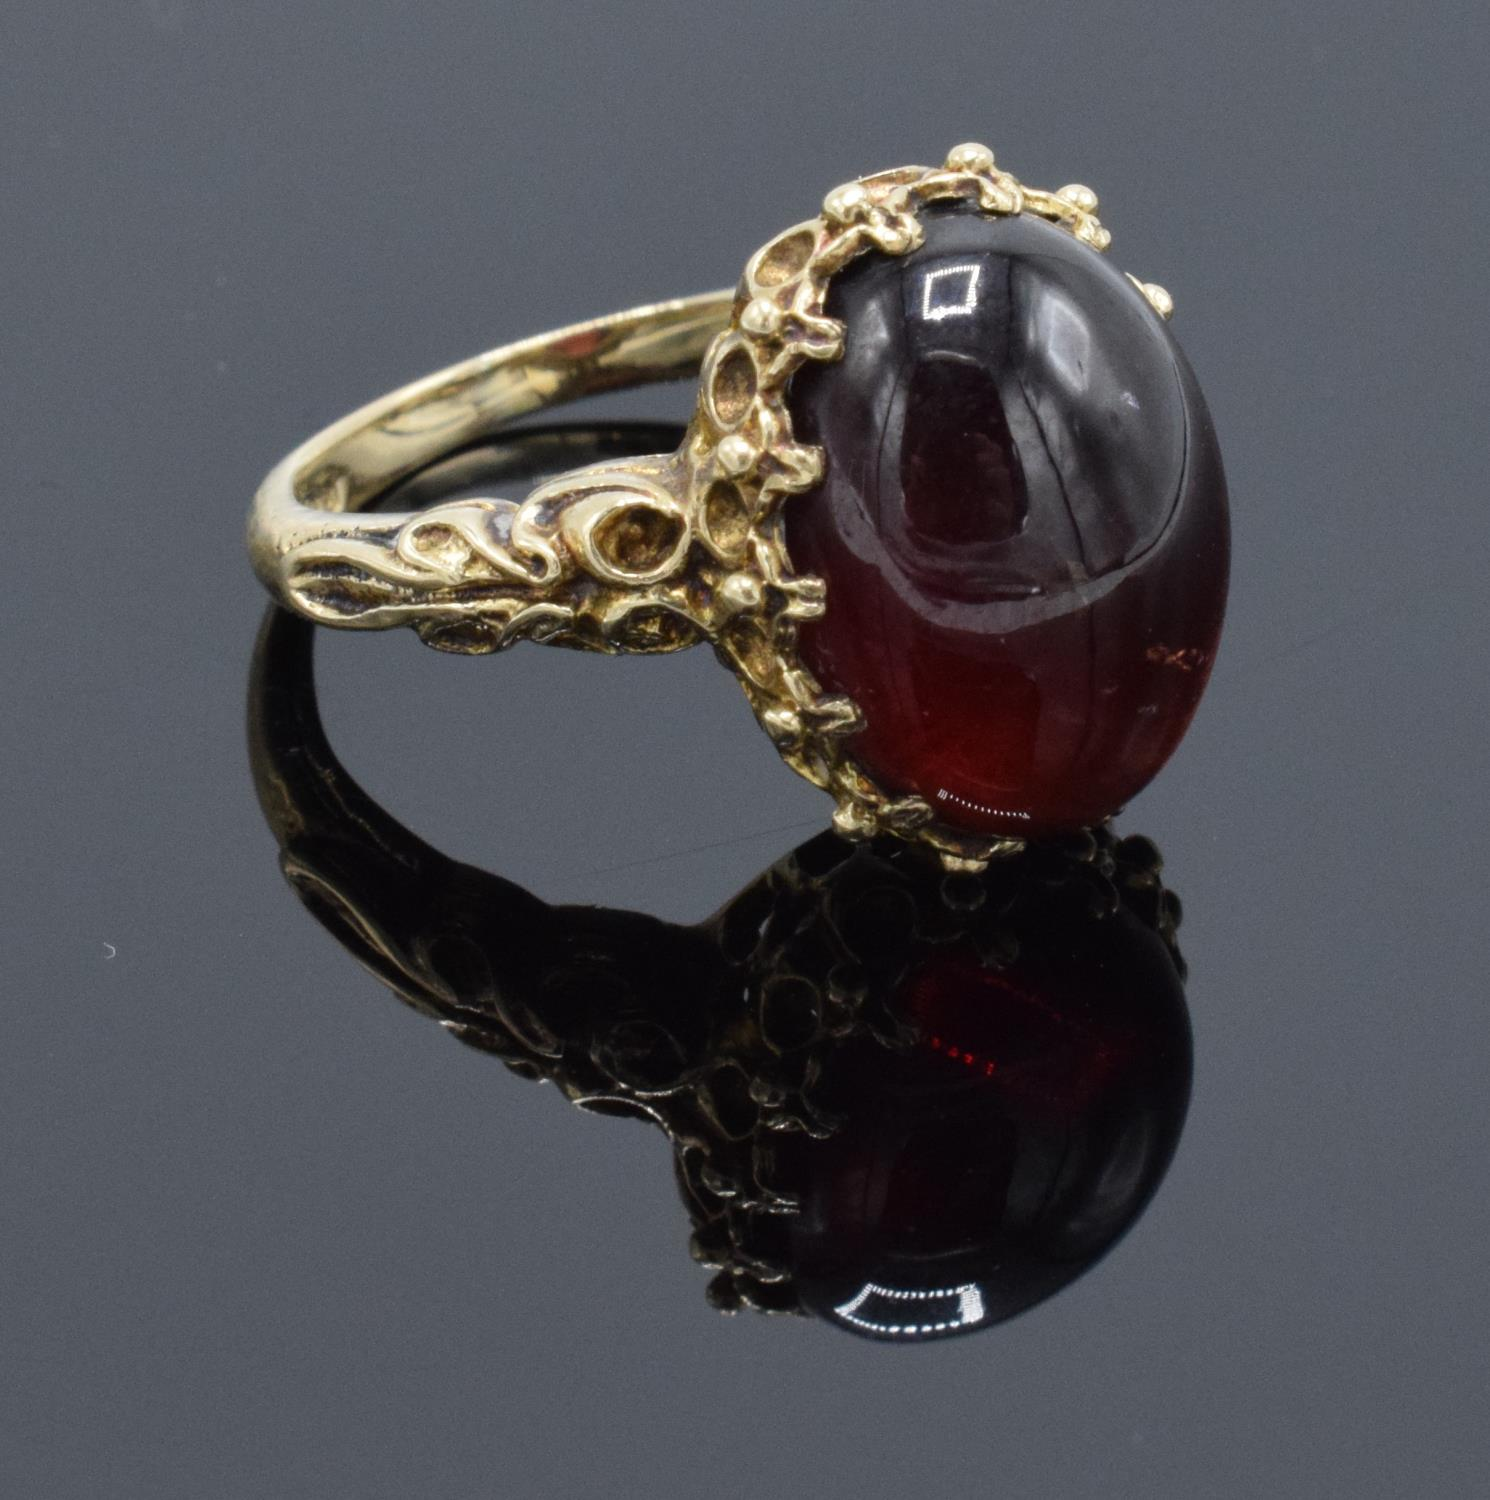 A hallmarked 9ct gold ornate ladies ring set with a polished cabochon stone, gross weight 5.5 grams.